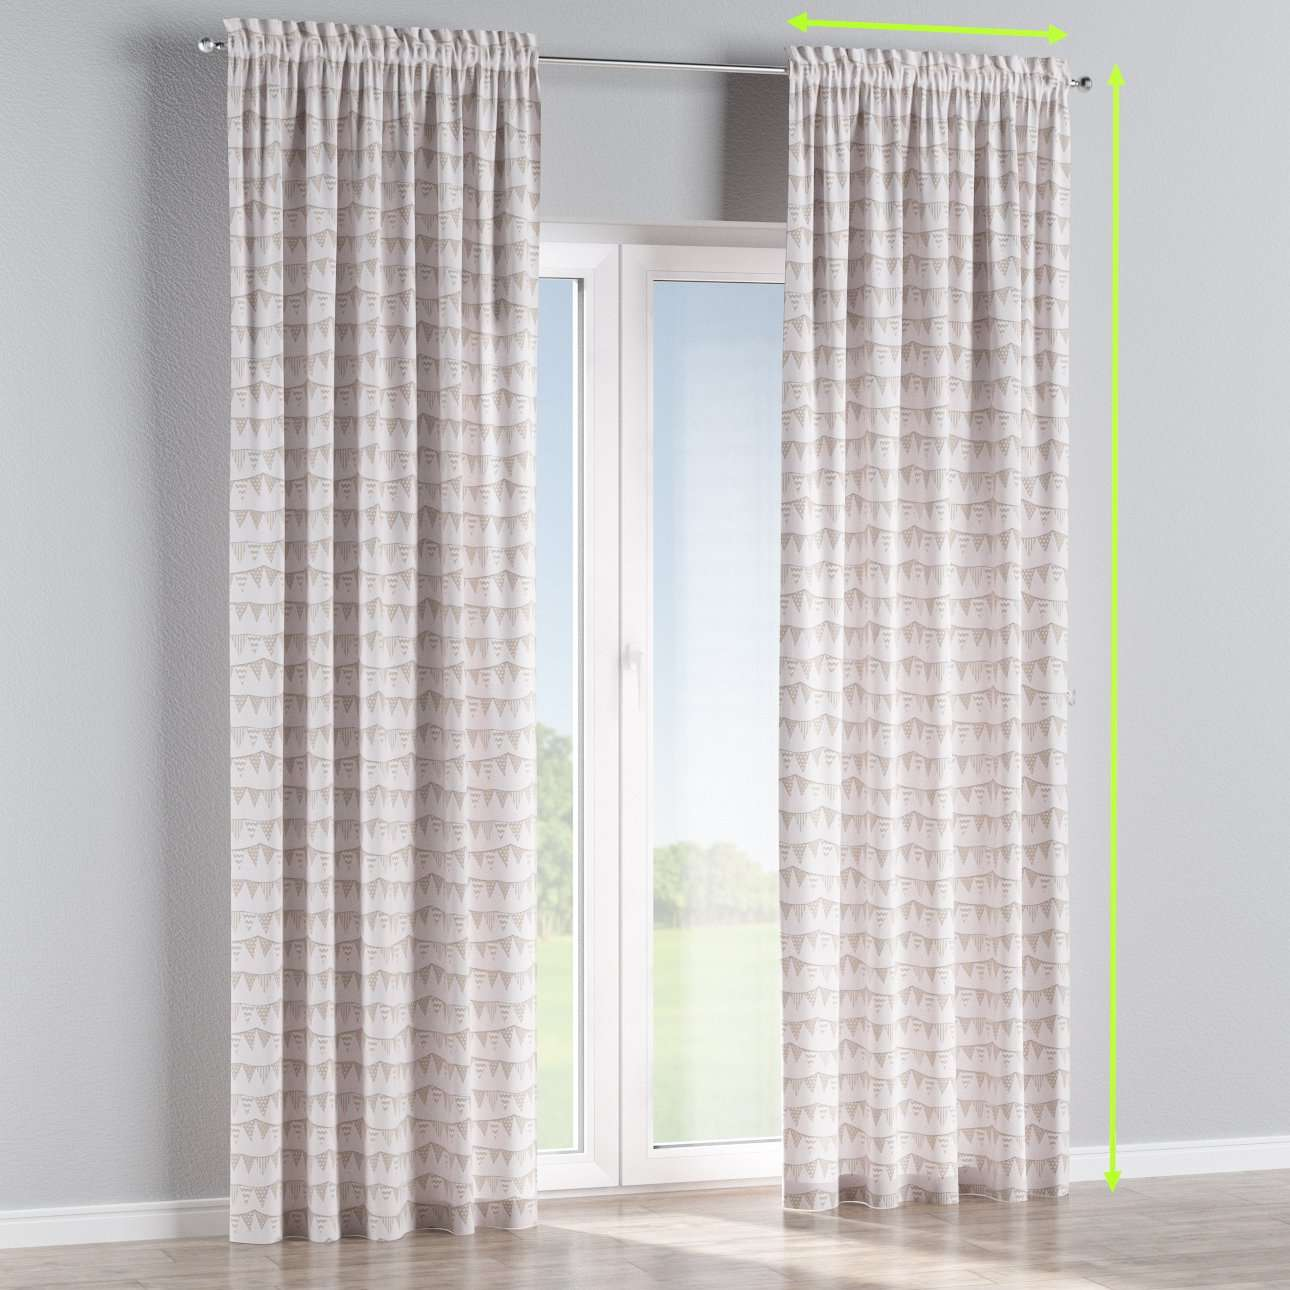 Slot and frill lined curtains in collection Marina, fabric: 140-65